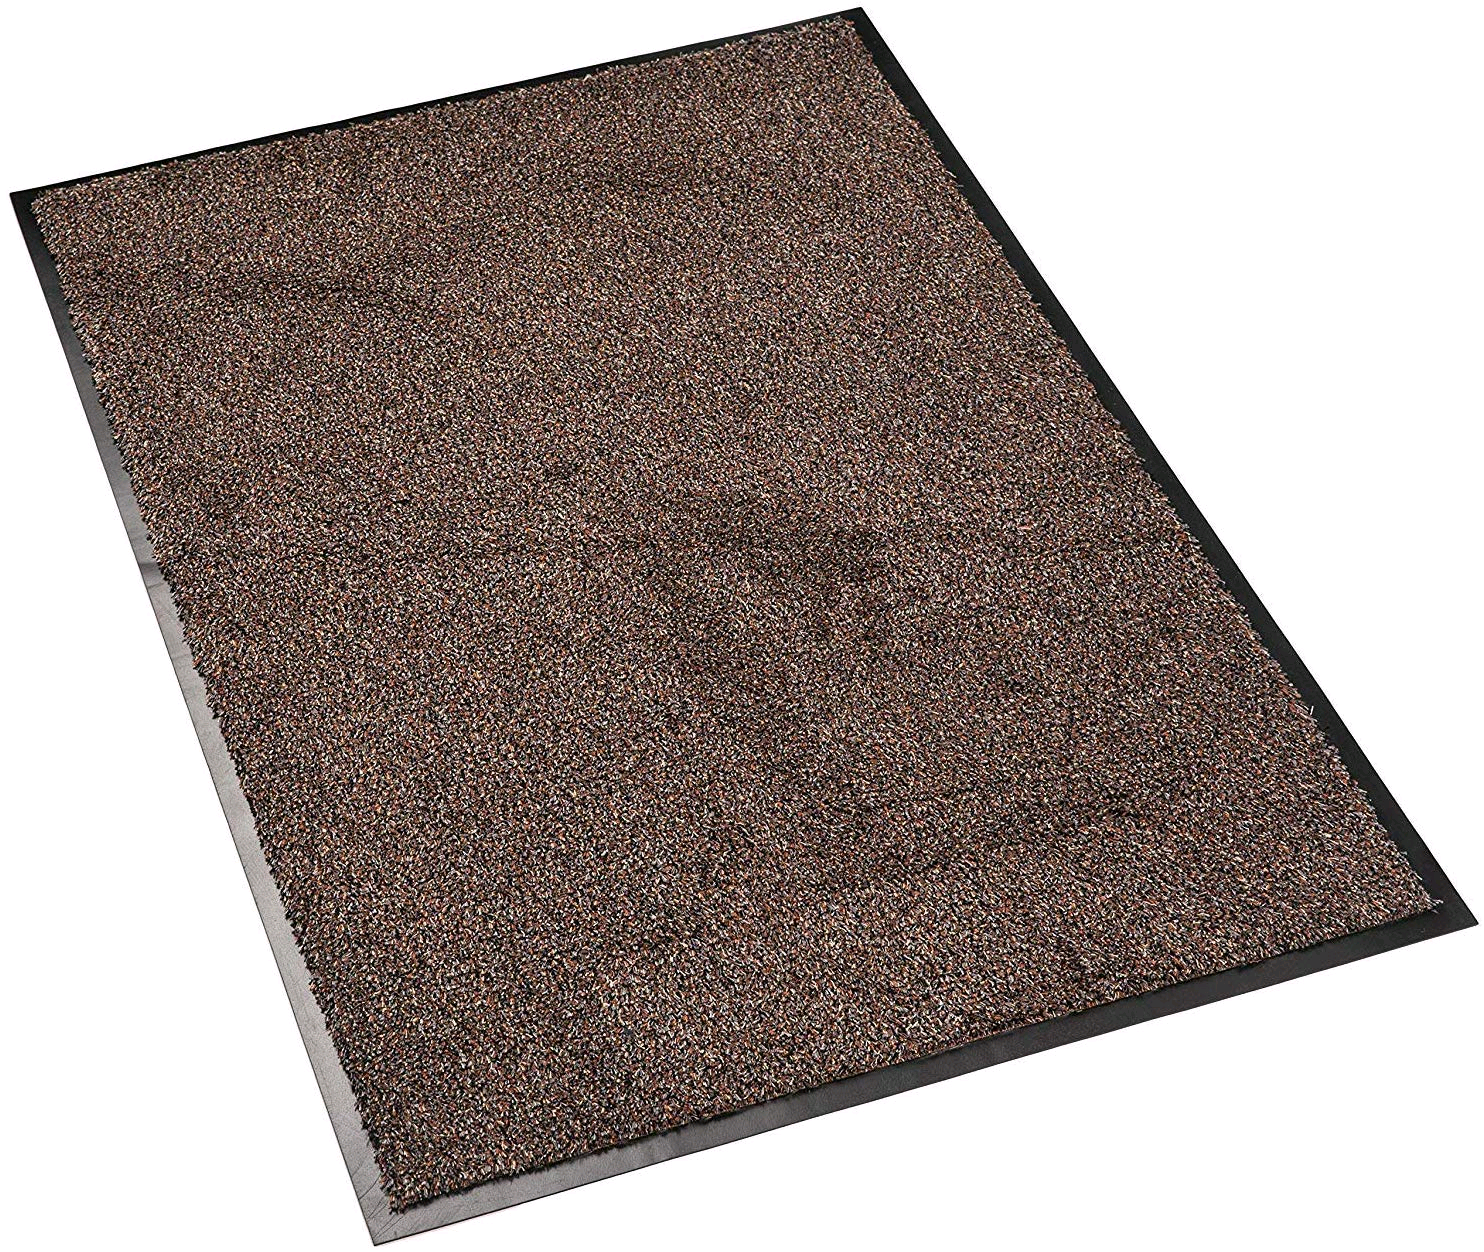 Dandy Washamat Doormat 80x50cm Copper Fleck William Armes Cotton with Vinyl/Rubber Backing